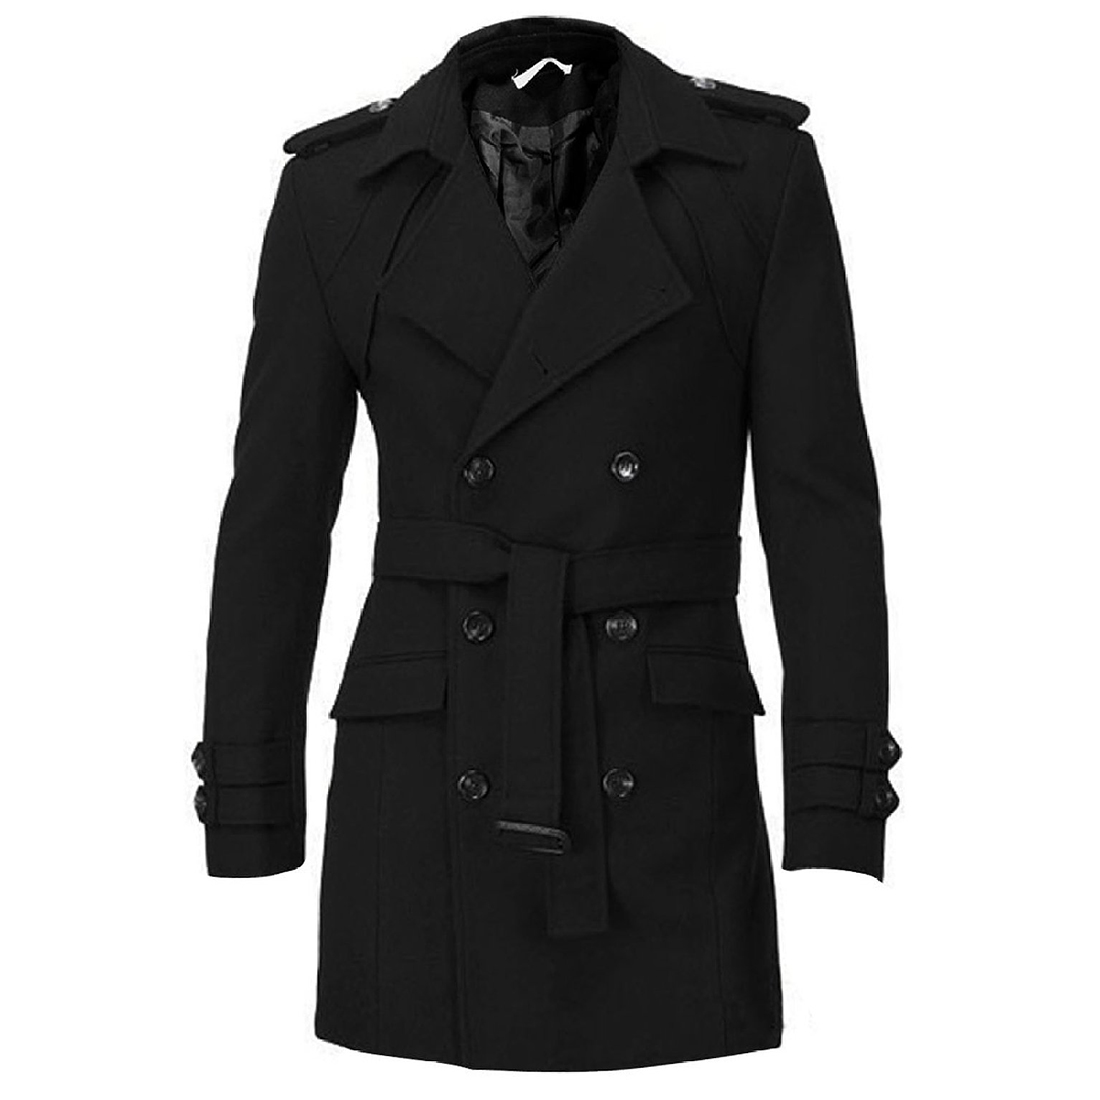 SAF Men Epaulets Slim Fit Double Breasted Belted Worsted Coat 2 COLORS